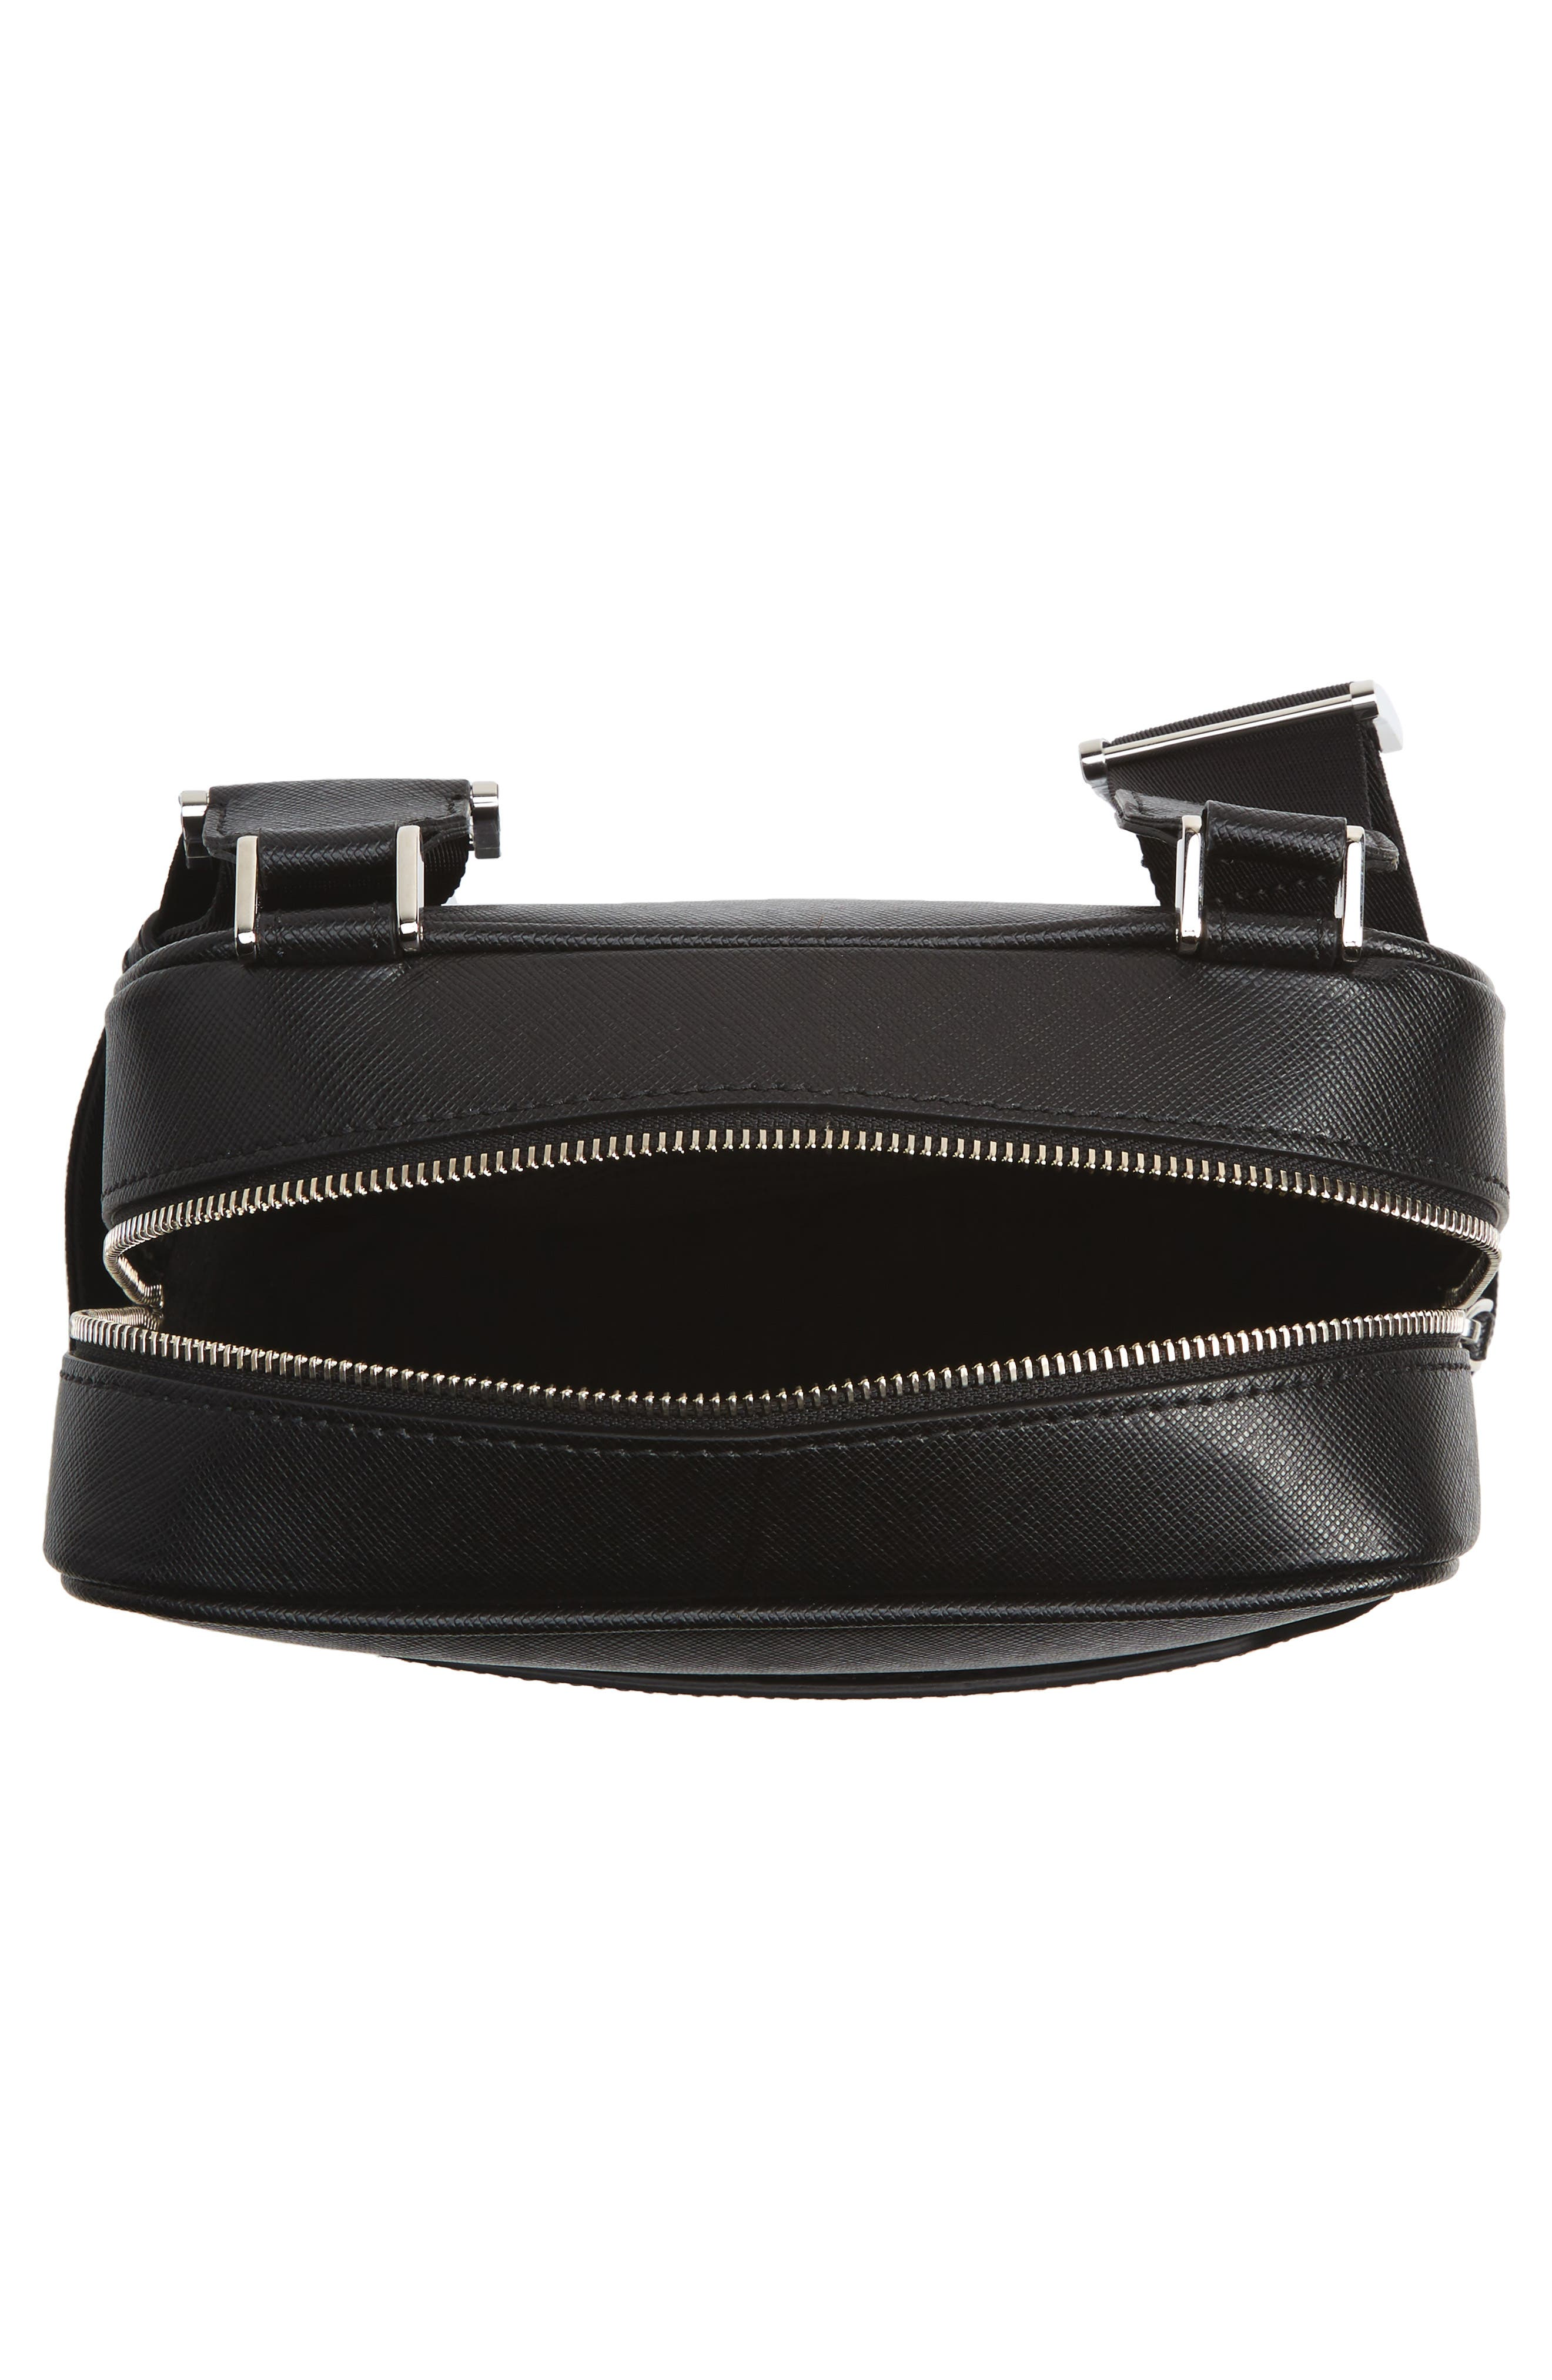 Sartorial North South Leather Bag,                             Alternate thumbnail 4, color,                             001